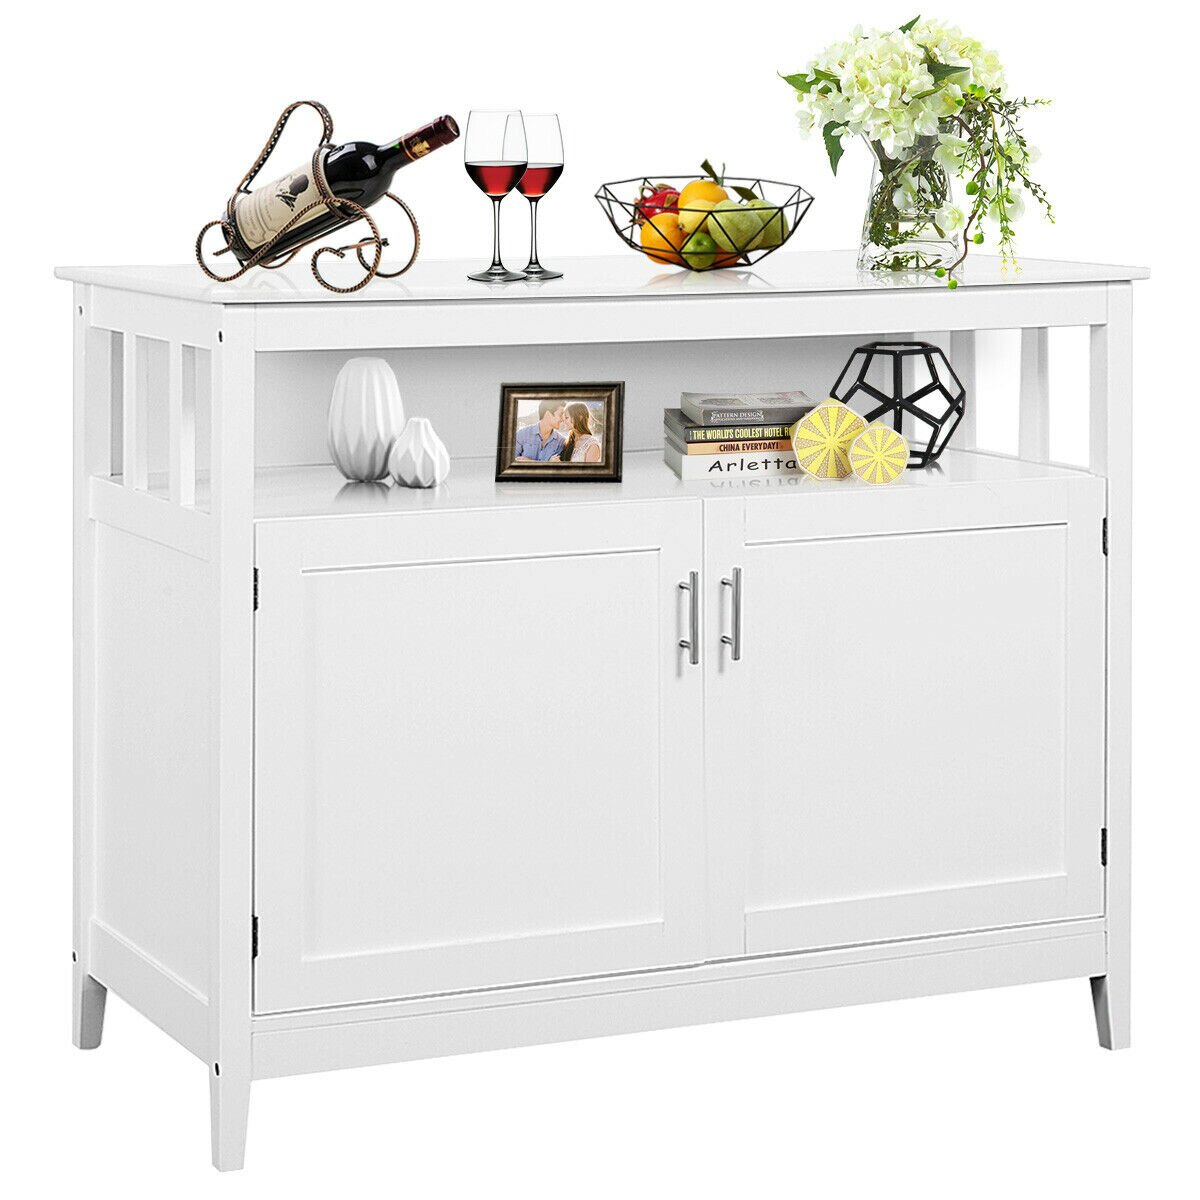 Costway: Costway Modern Kitchen Storage Cabinet Buffet Server Table Sideboard Dining Wood White | Rakuten With Regard To Contemporary Espresso Dining Buffets (View 8 of 30)